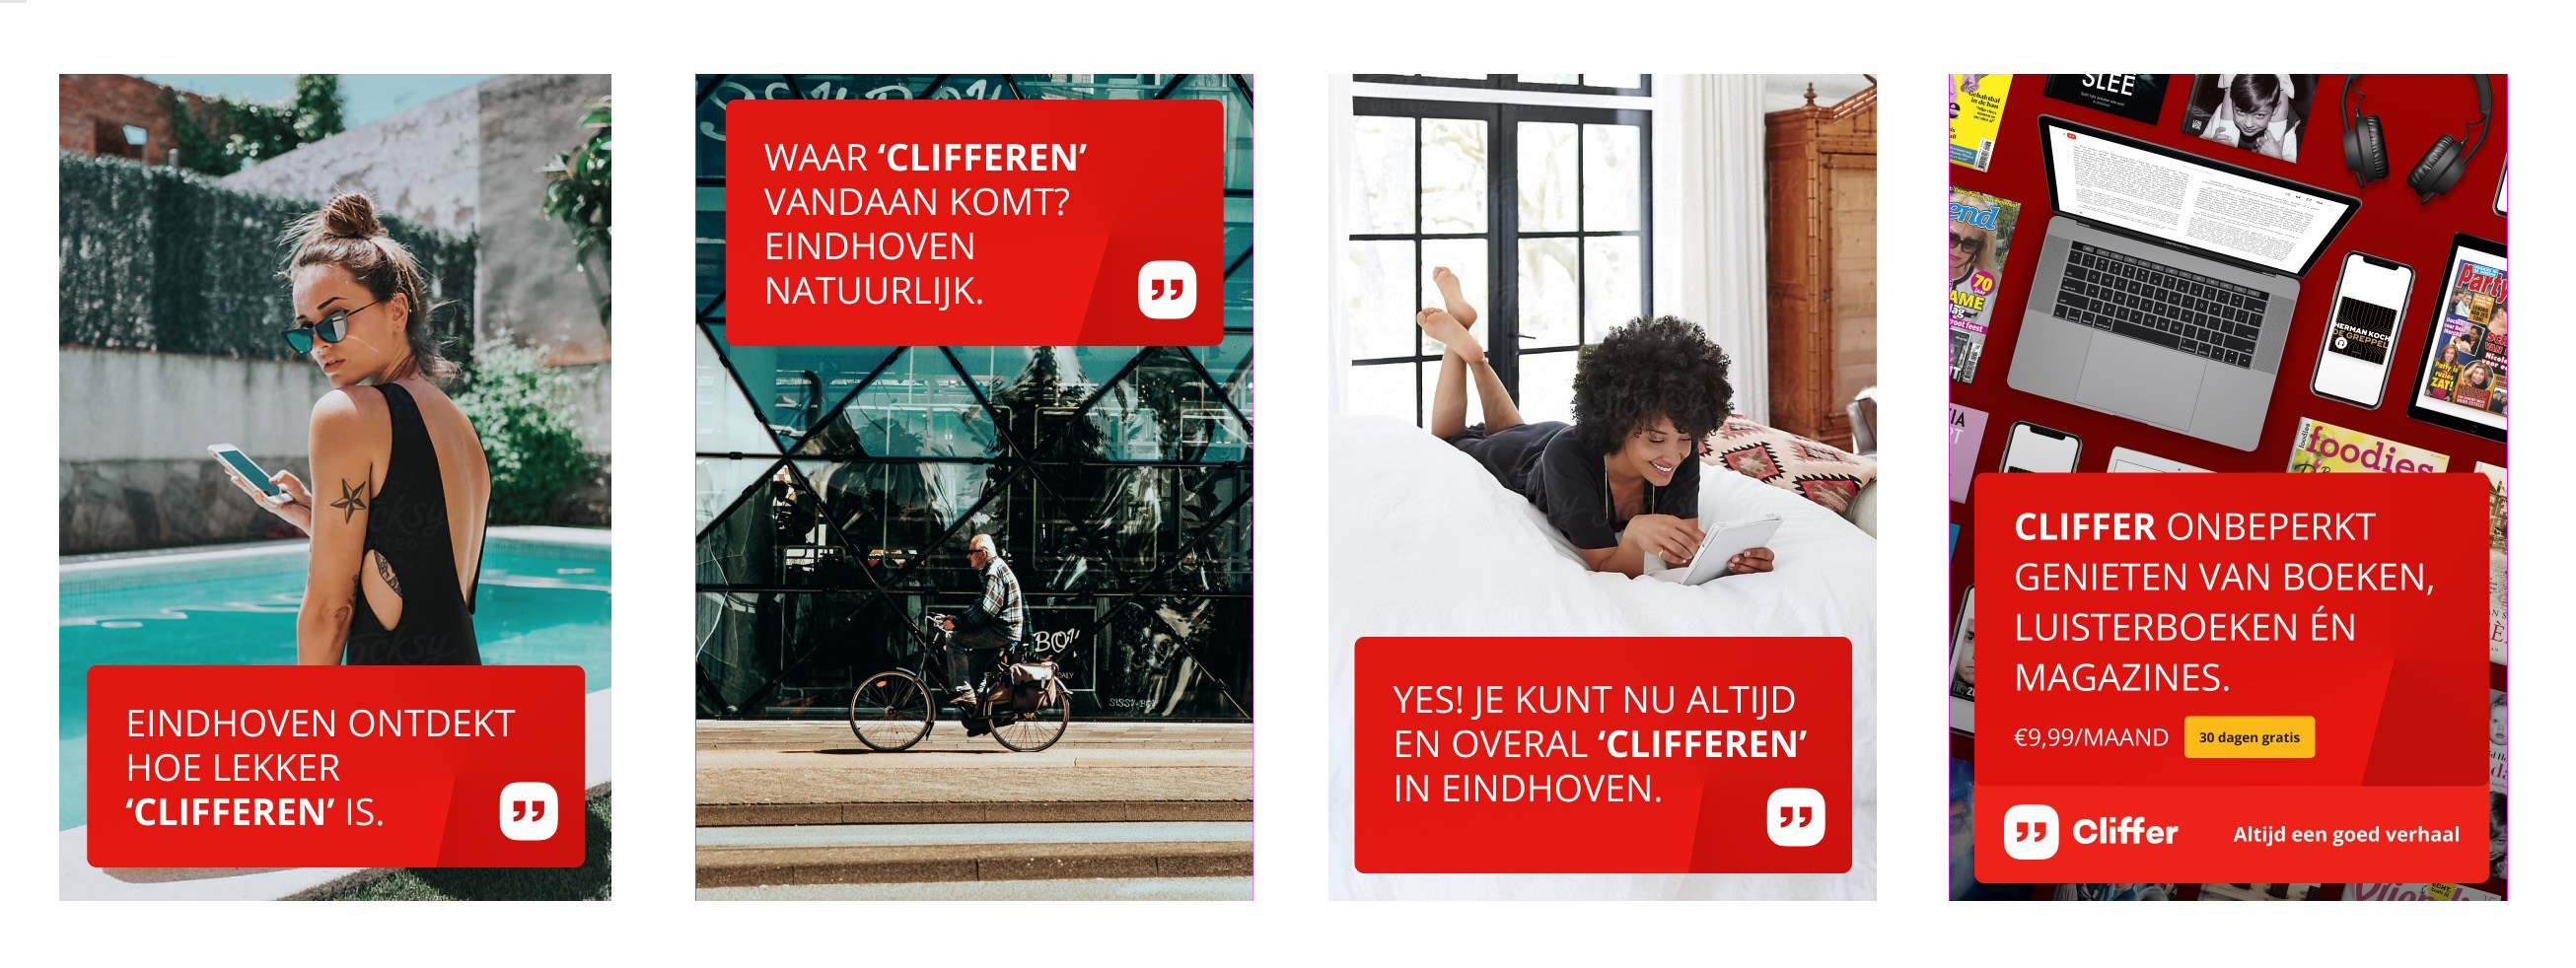 Campagne Cliffer